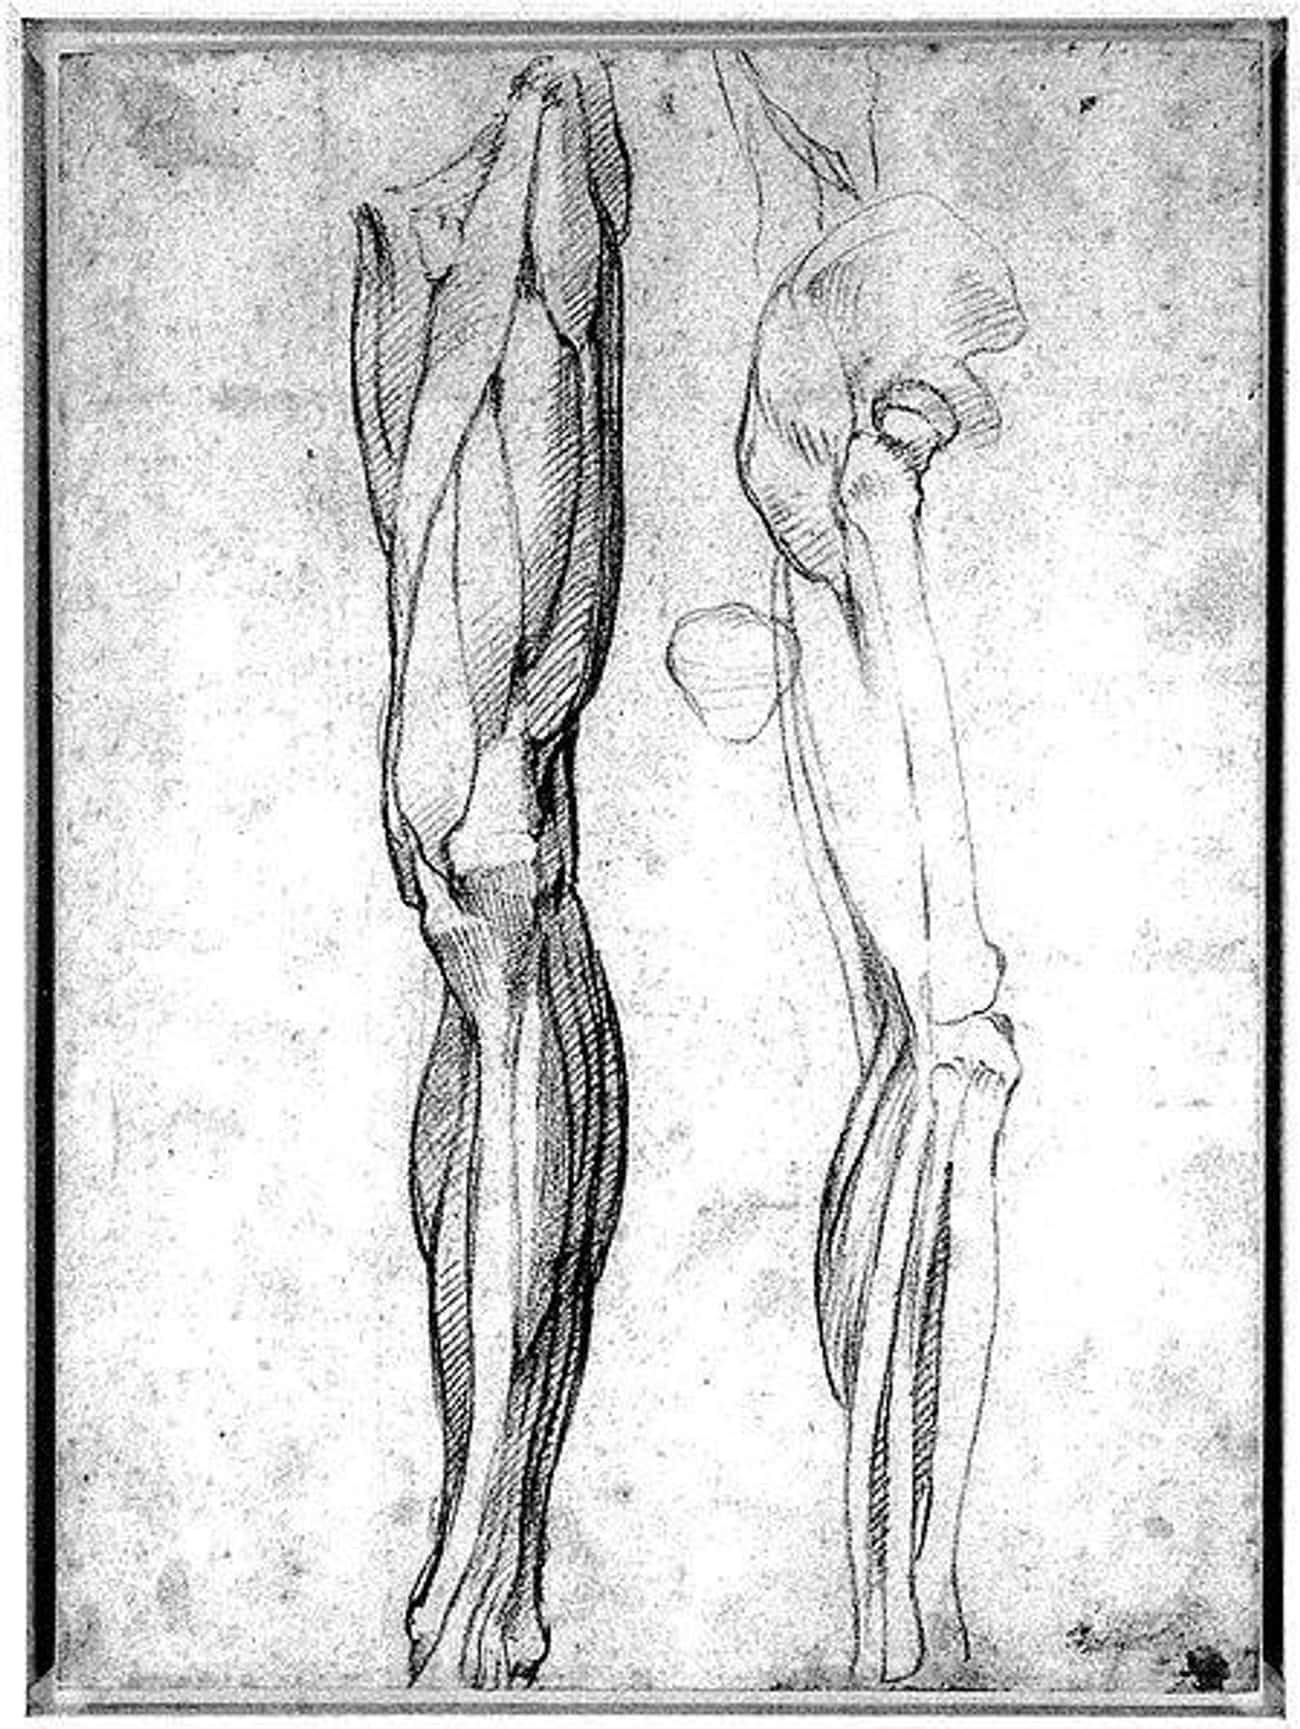 Michelangelo Dissected Corpses is listed (or ranked) 4 on the list Turns Out Michelangelo And Da Vinci Trafficked Dead Bodies For Their Art